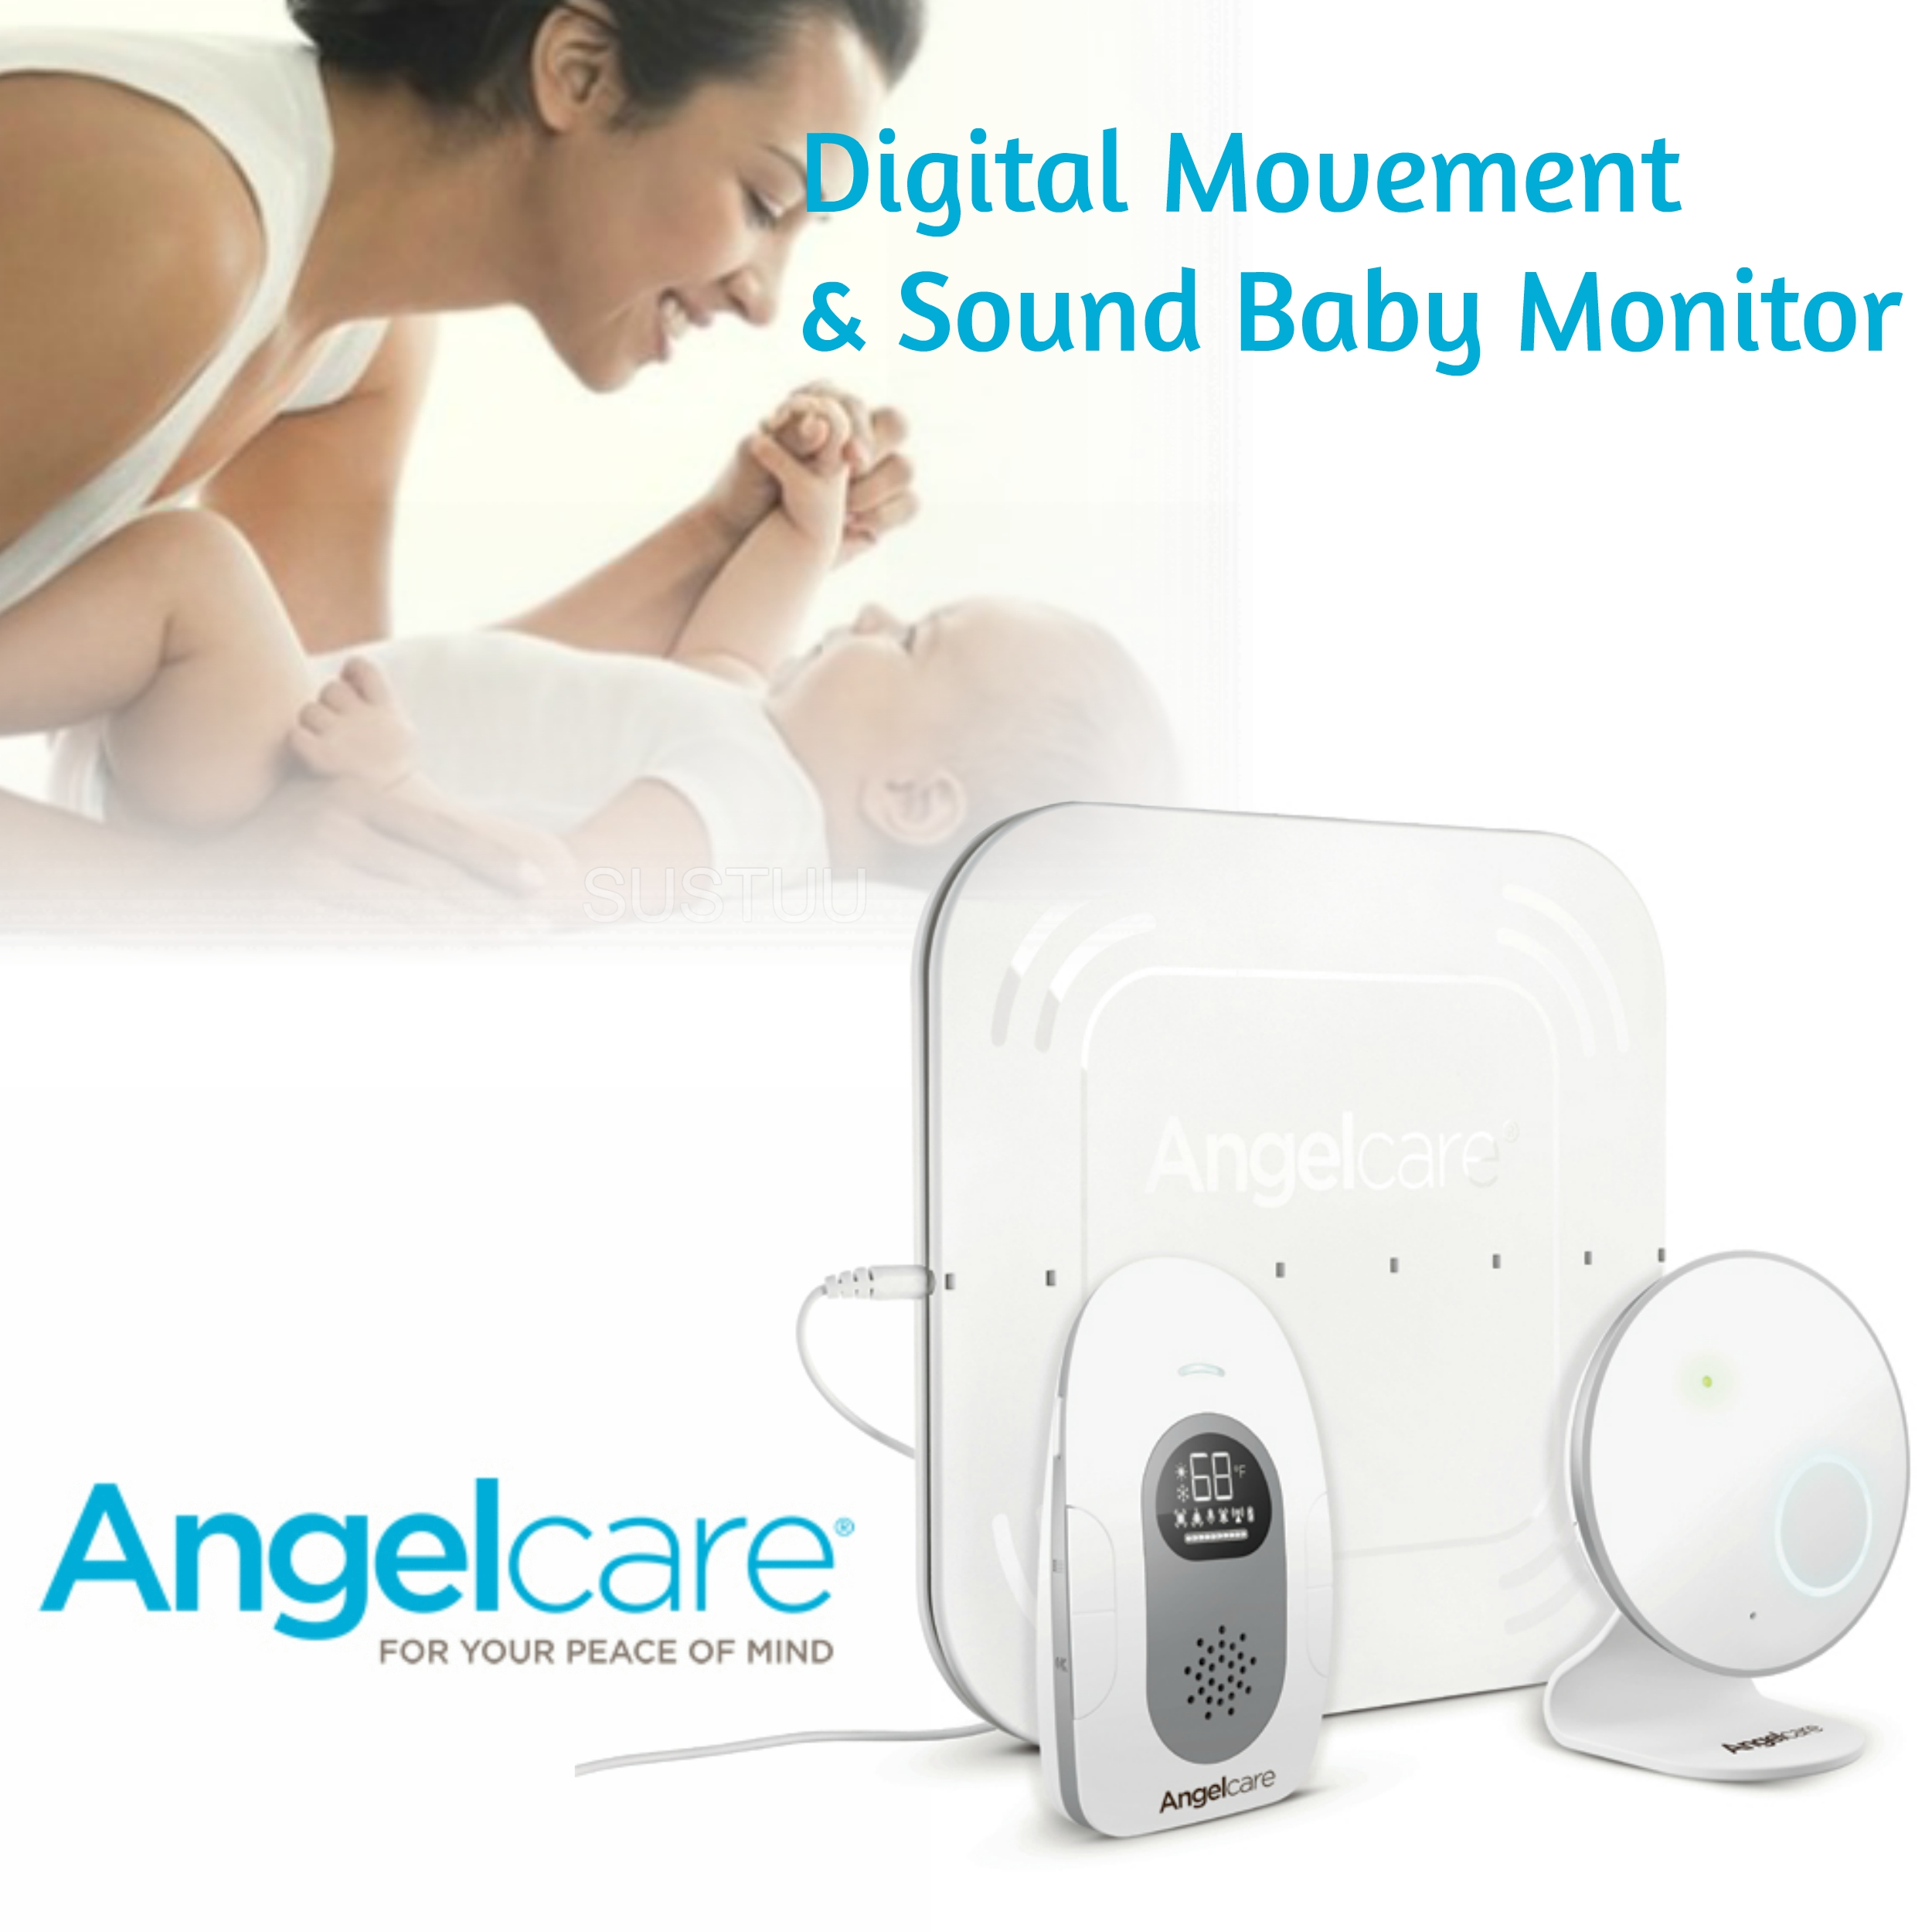 Angelcare Digital Movement & Sound Baby Monitor|Temperature Sensor|Alert System